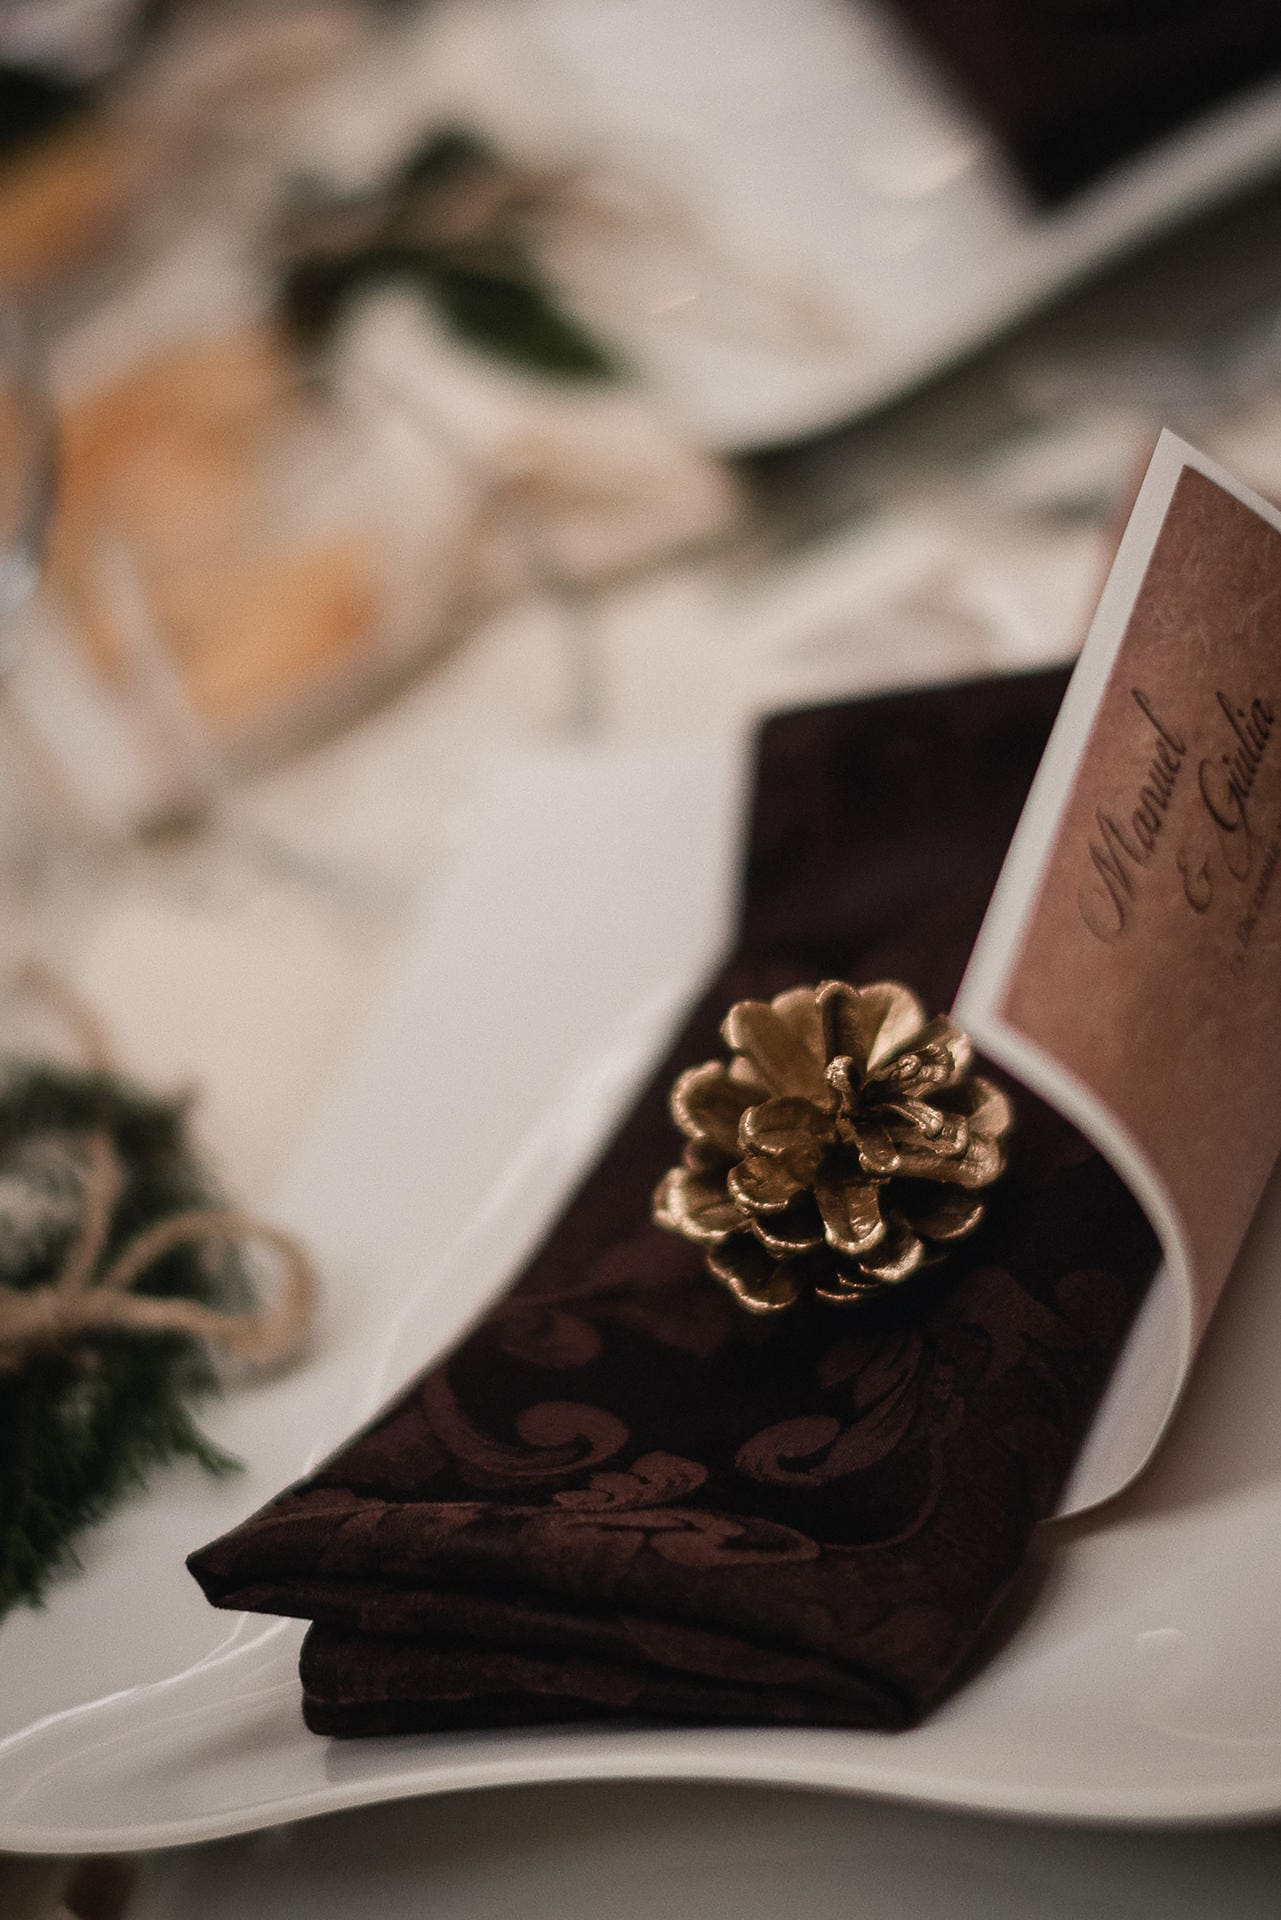 13.12.2014 - Wedding's detail